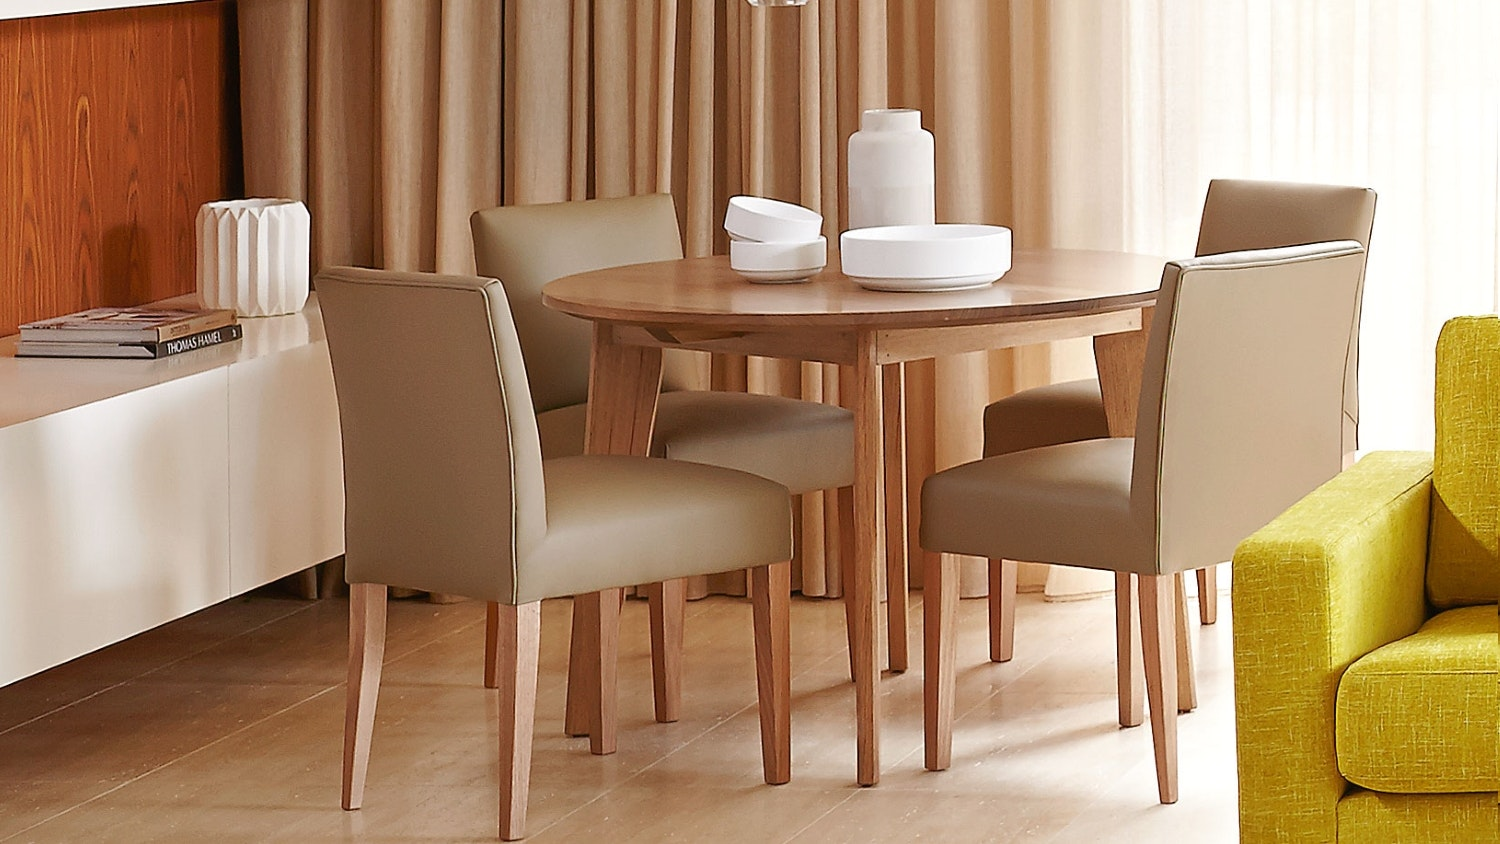 Domayne Dining Tables Round Rug In The Middle